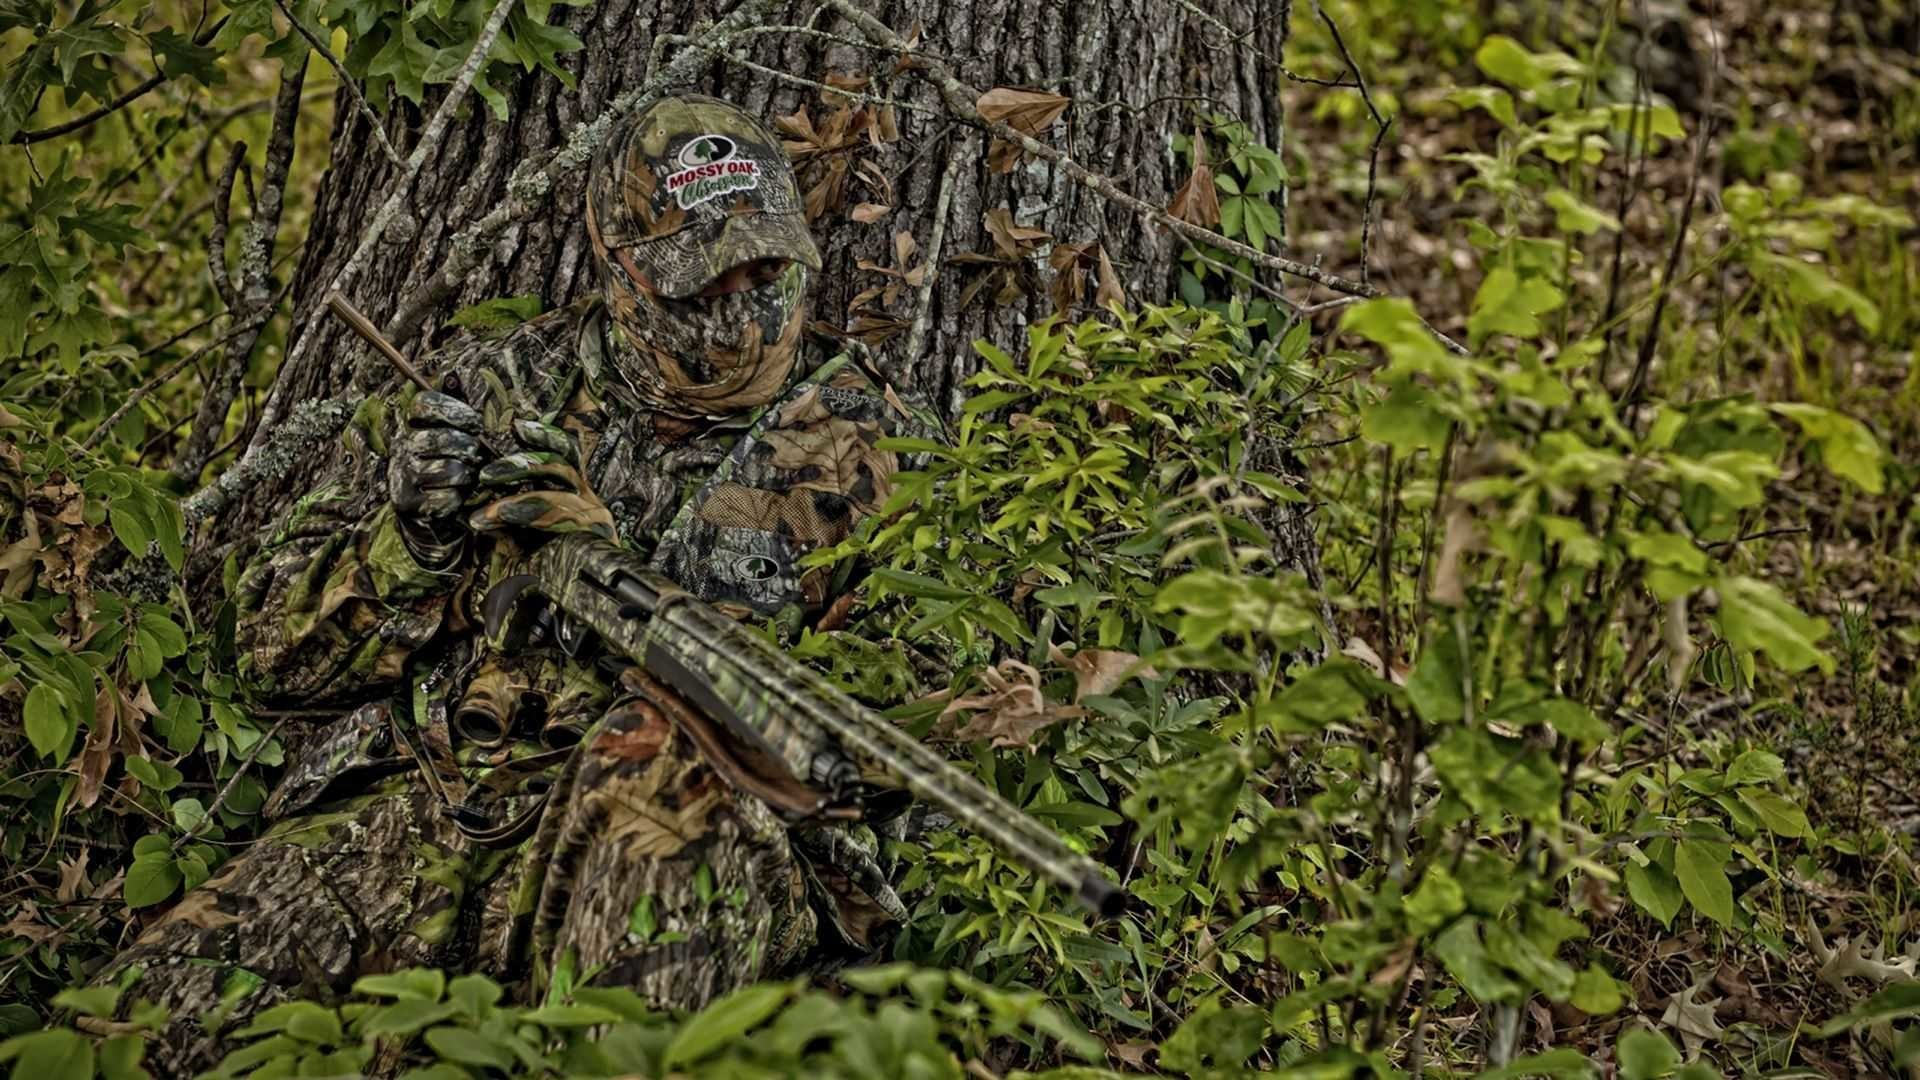 1920x1080  Mossy Oak Wallpaper Desktop Full Hd Pics Of Smartphone Camo